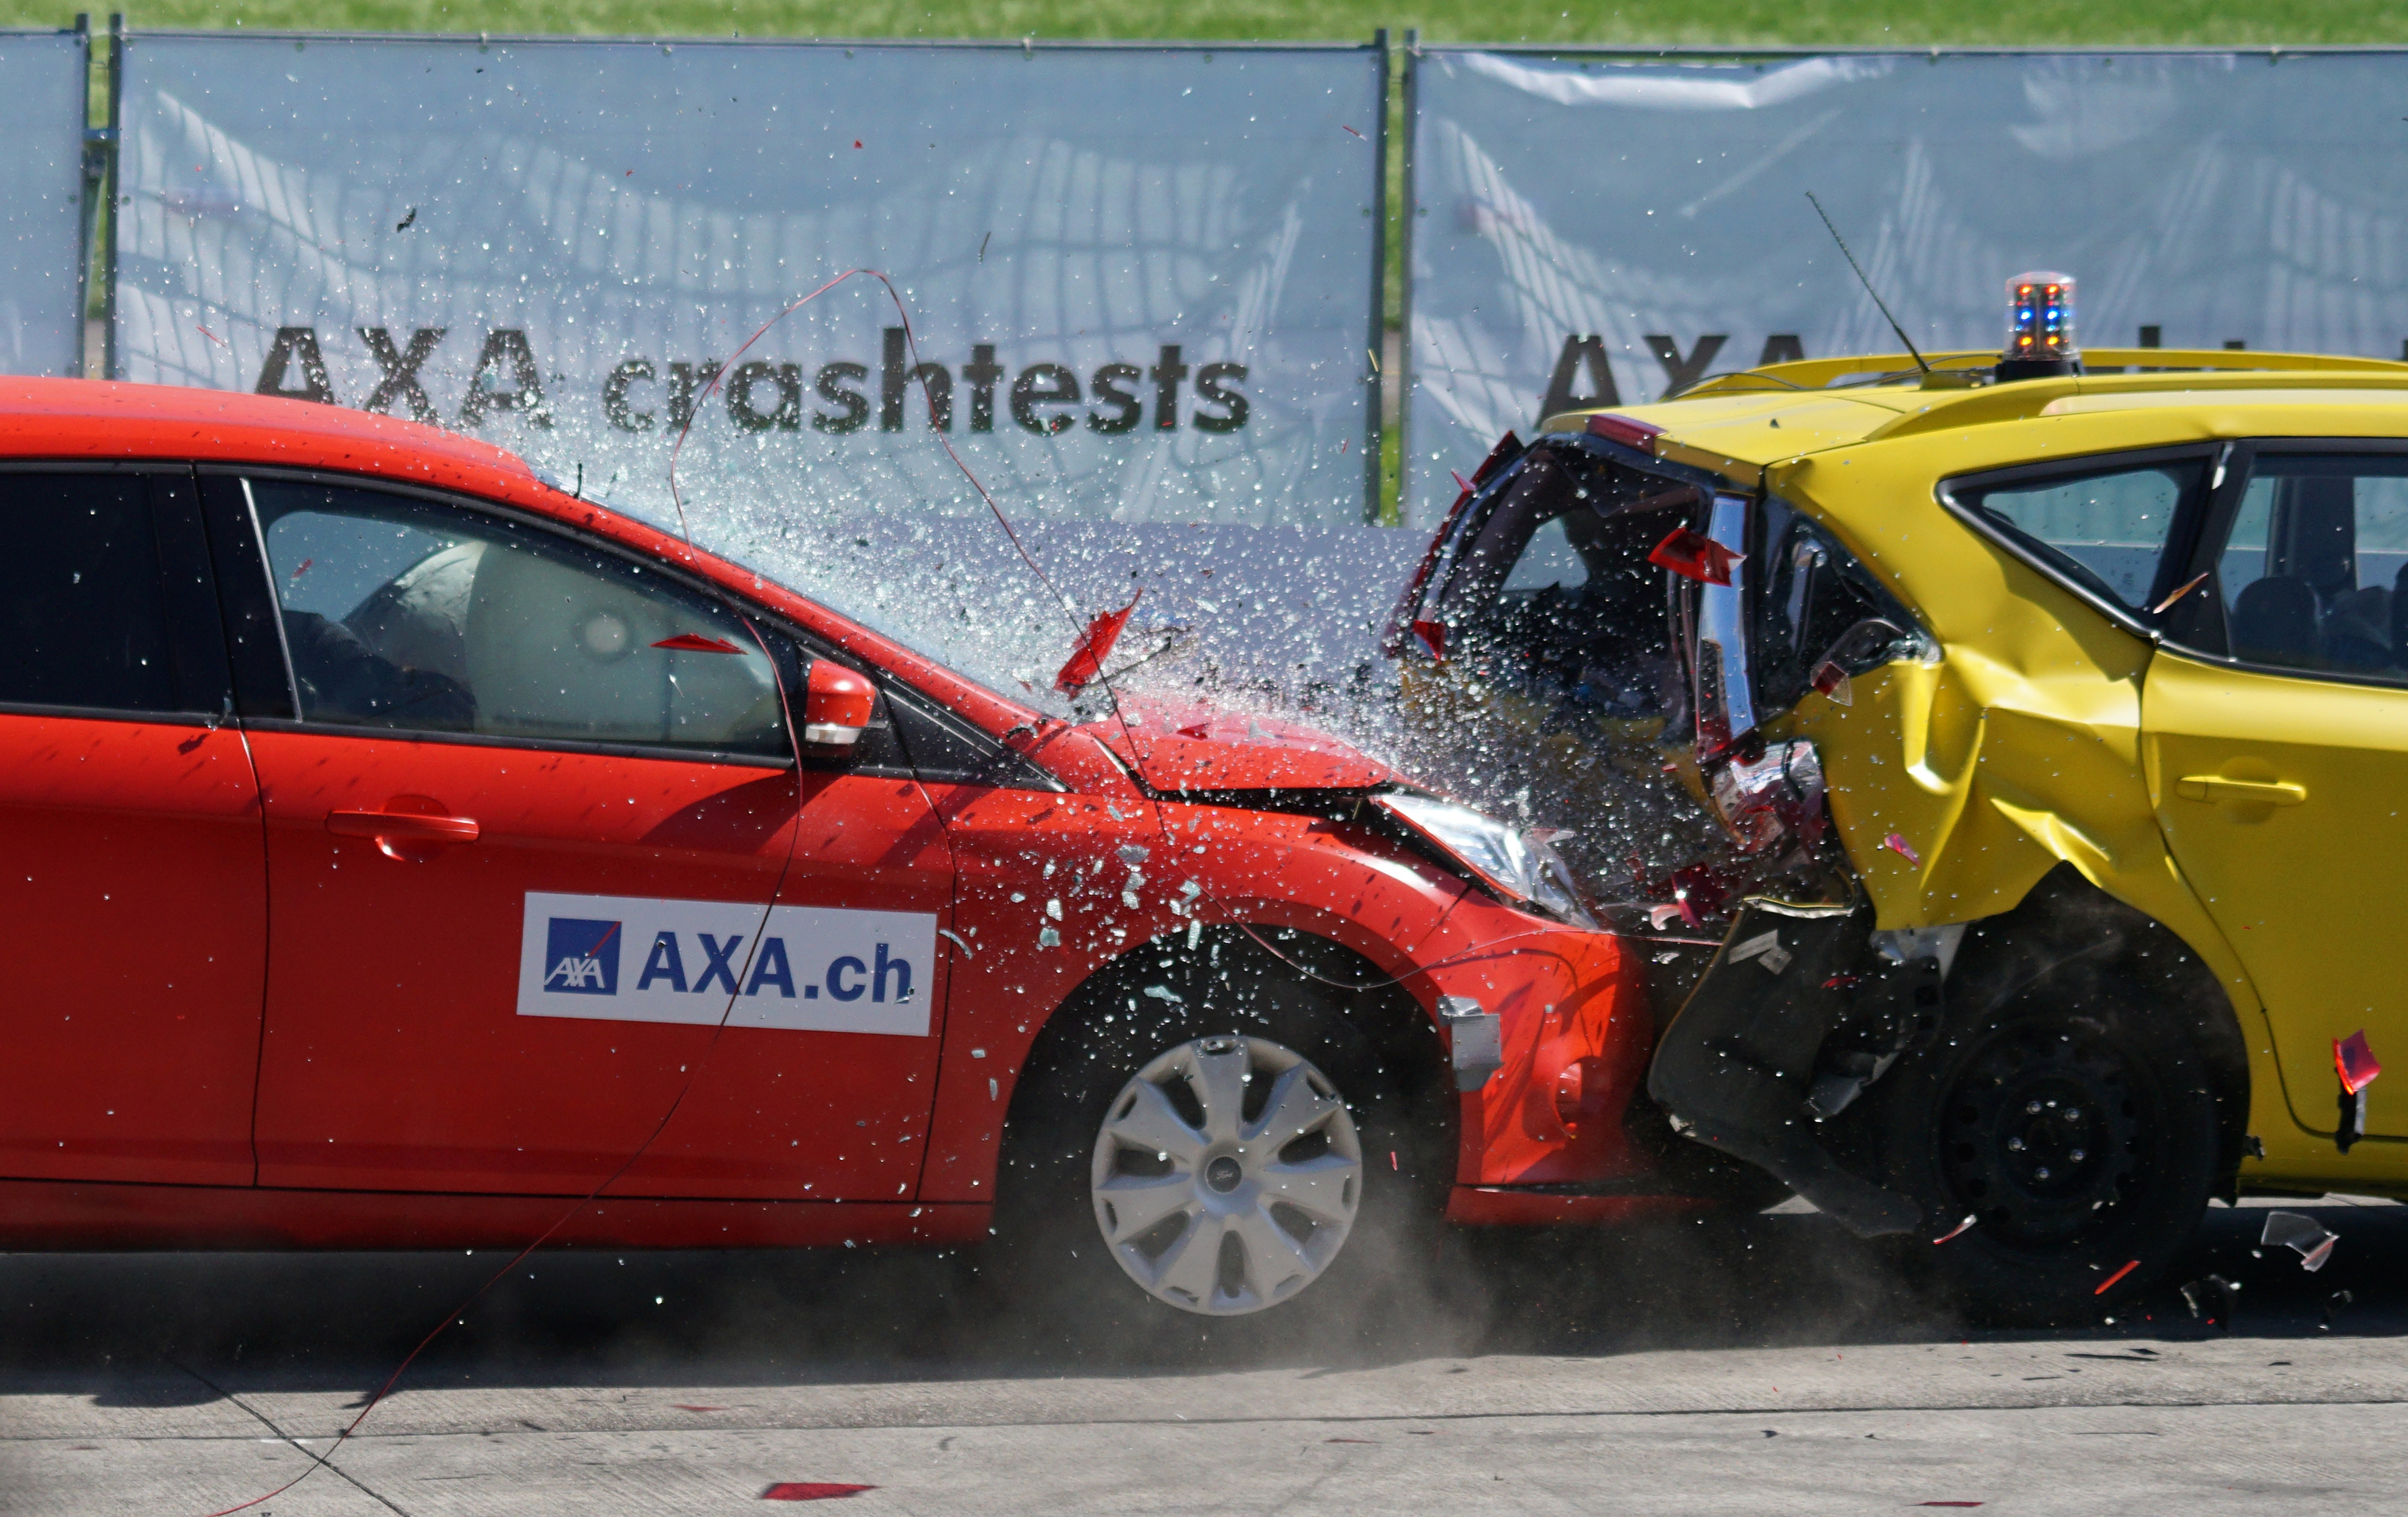 All you need to know about auto insurance property damage liability all you need to know about auto insurance property damage liability altavistaventures Gallery